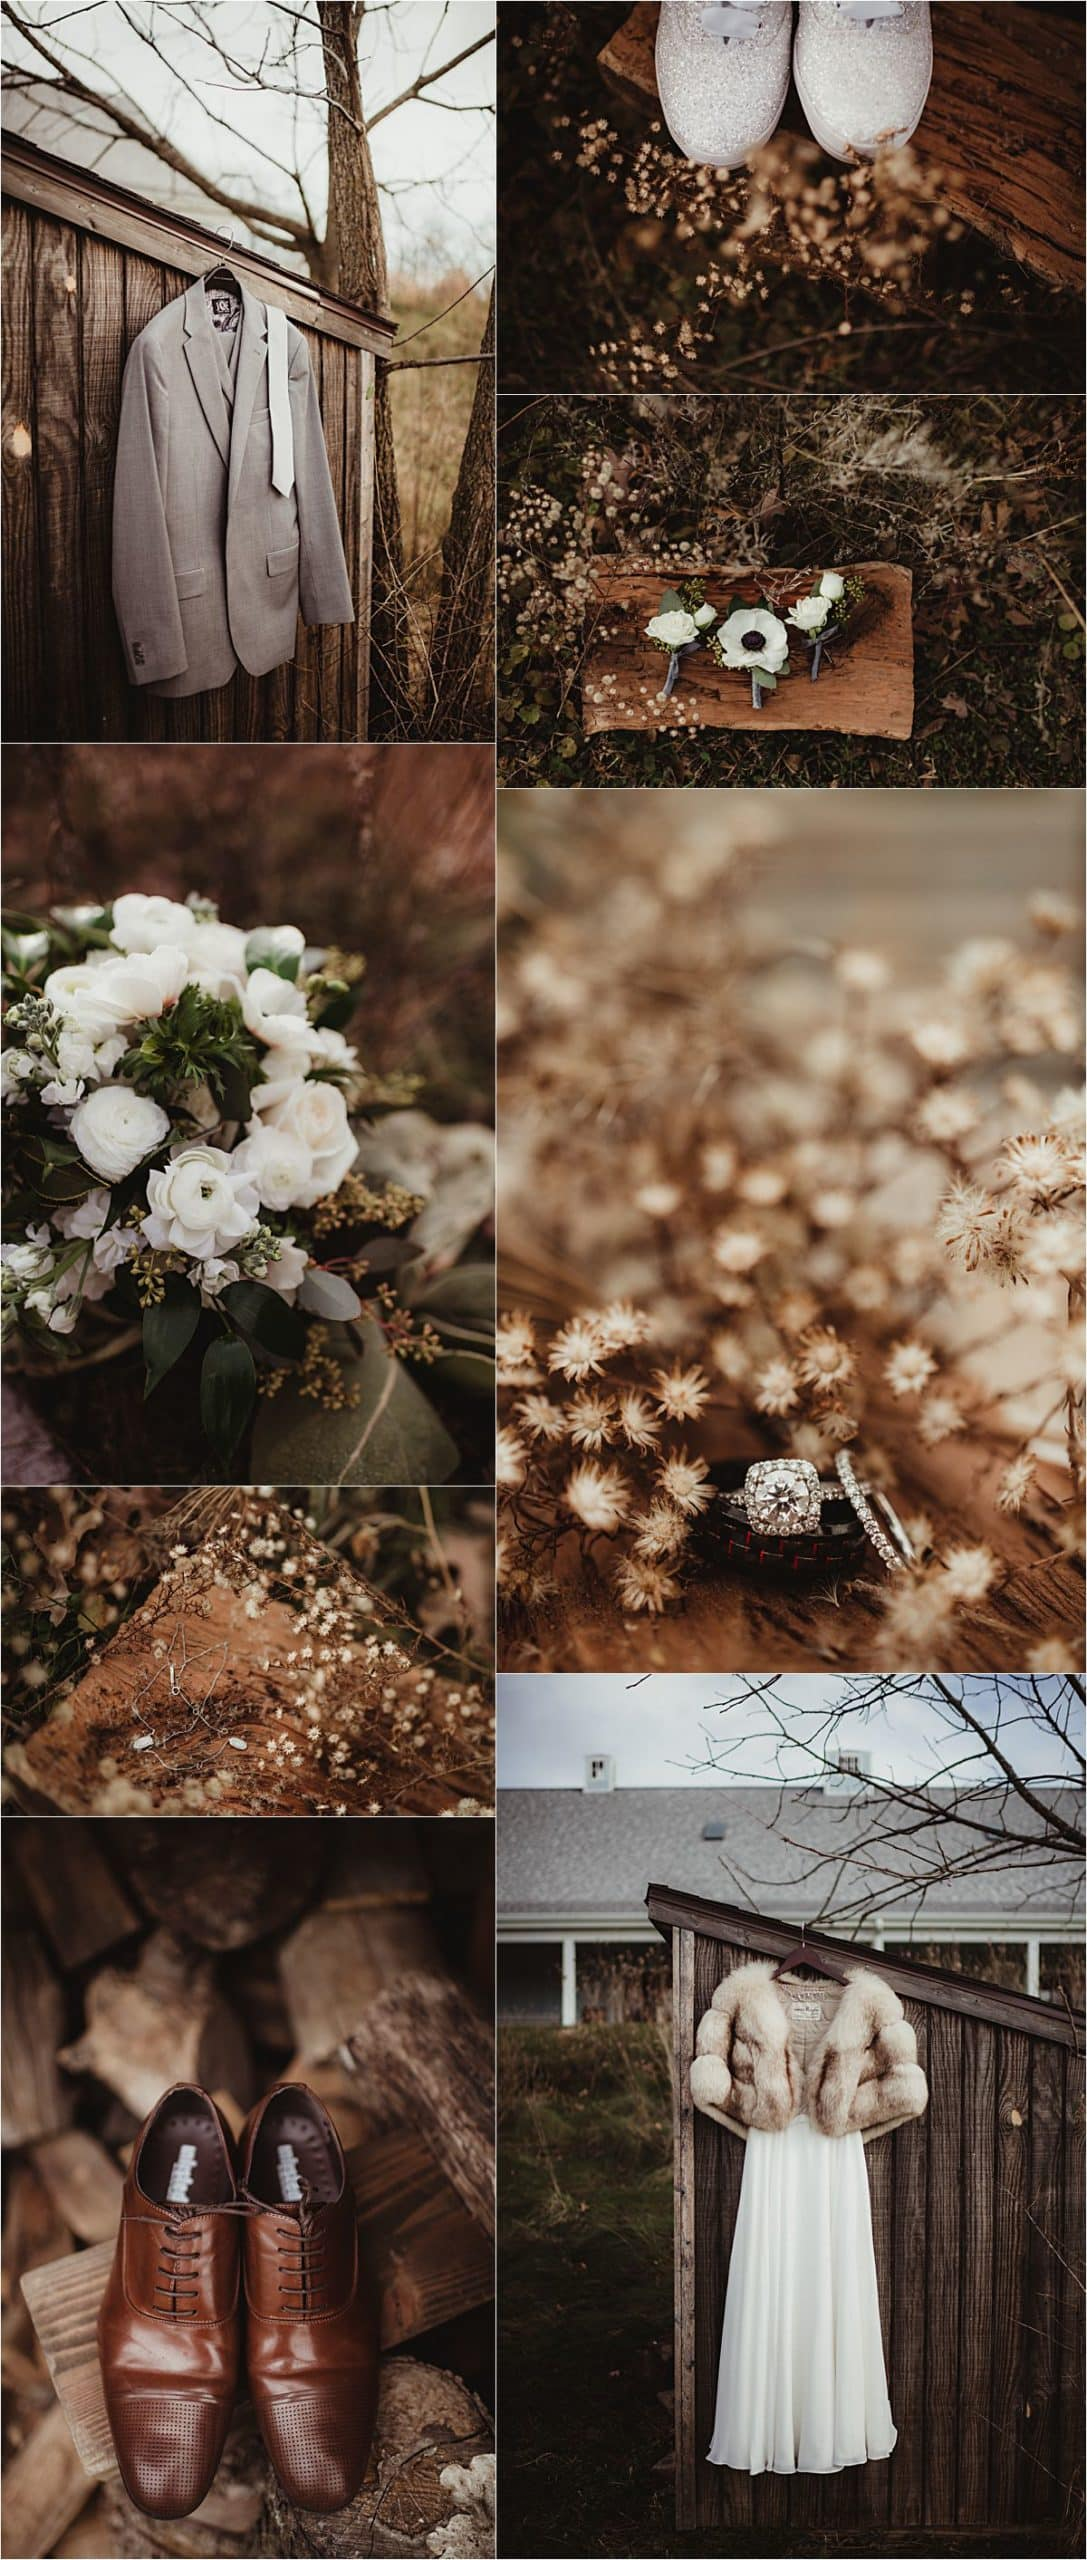 Rustic Winter Micro Wedding Getting Ready Details